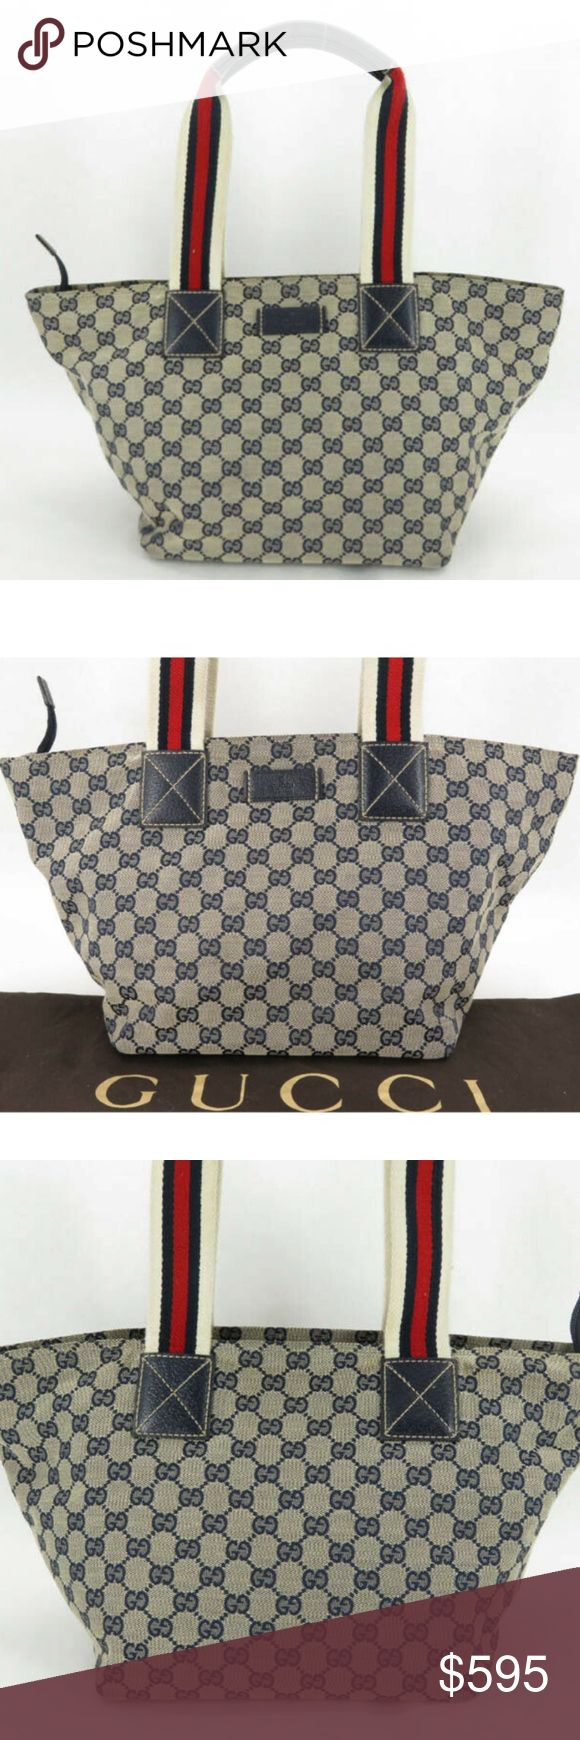 131230 100% auth gucci gg sherry navy canvas leather tote date code